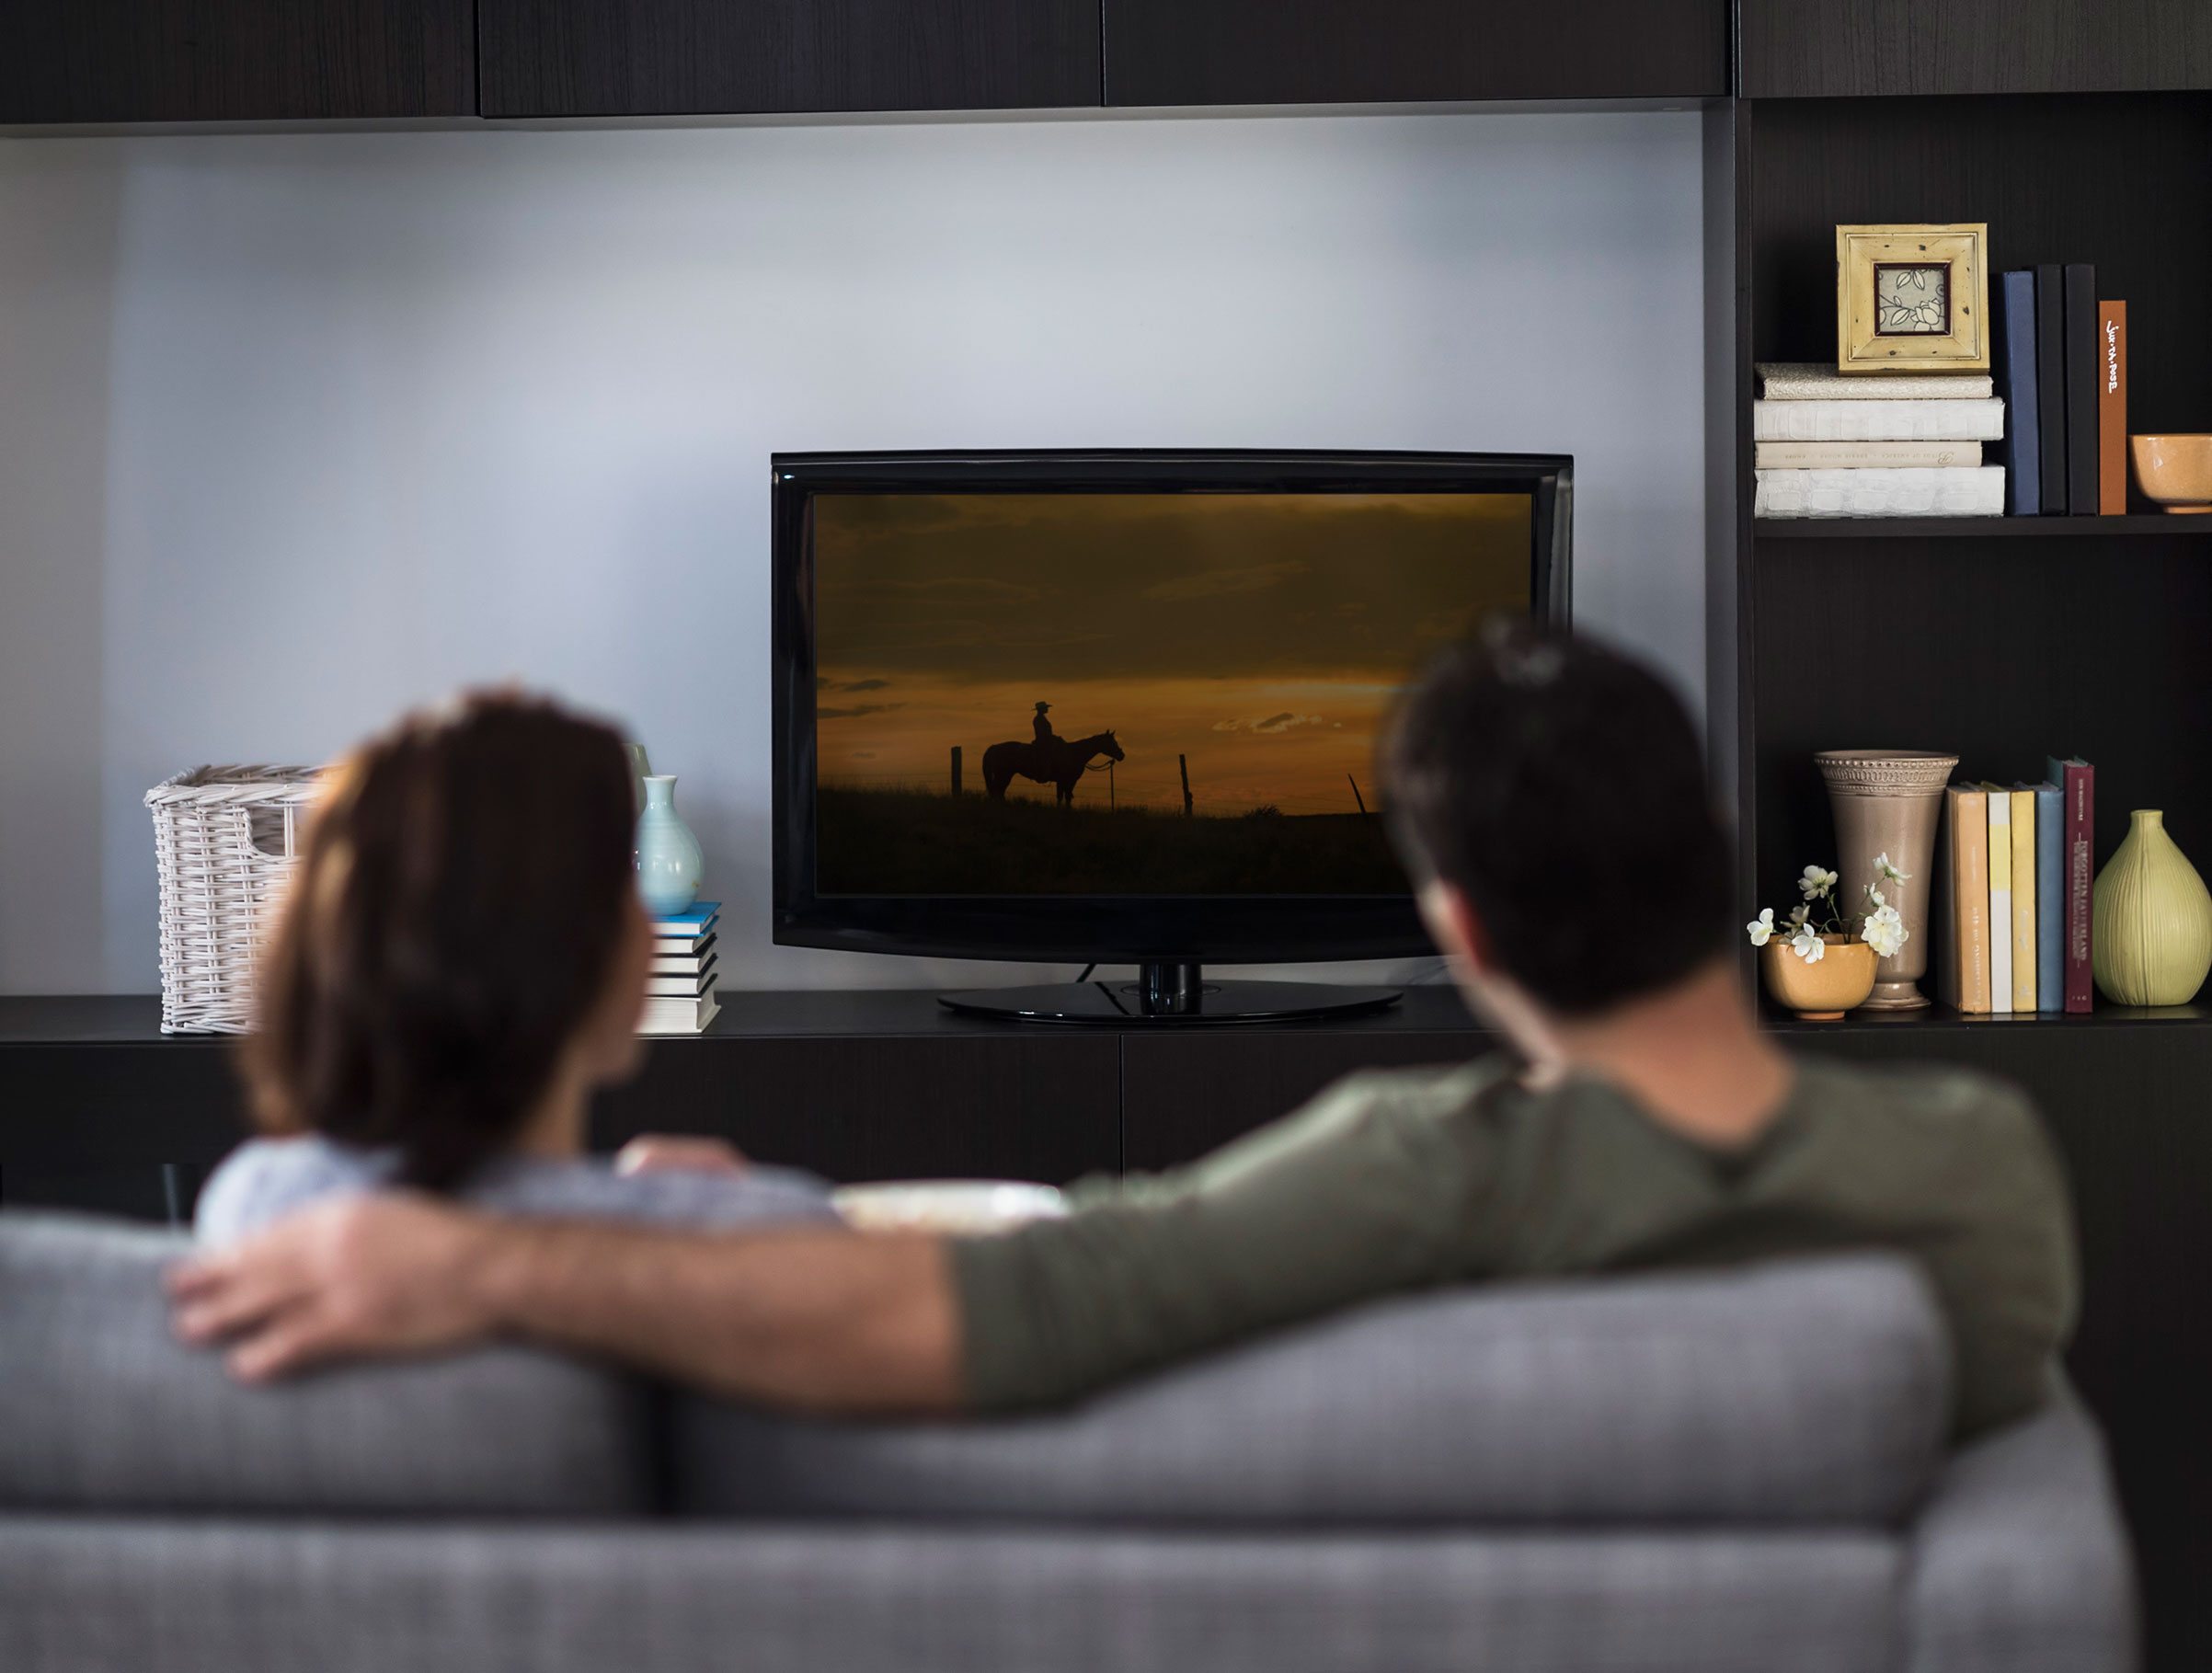 Couple watching TV on their couch.